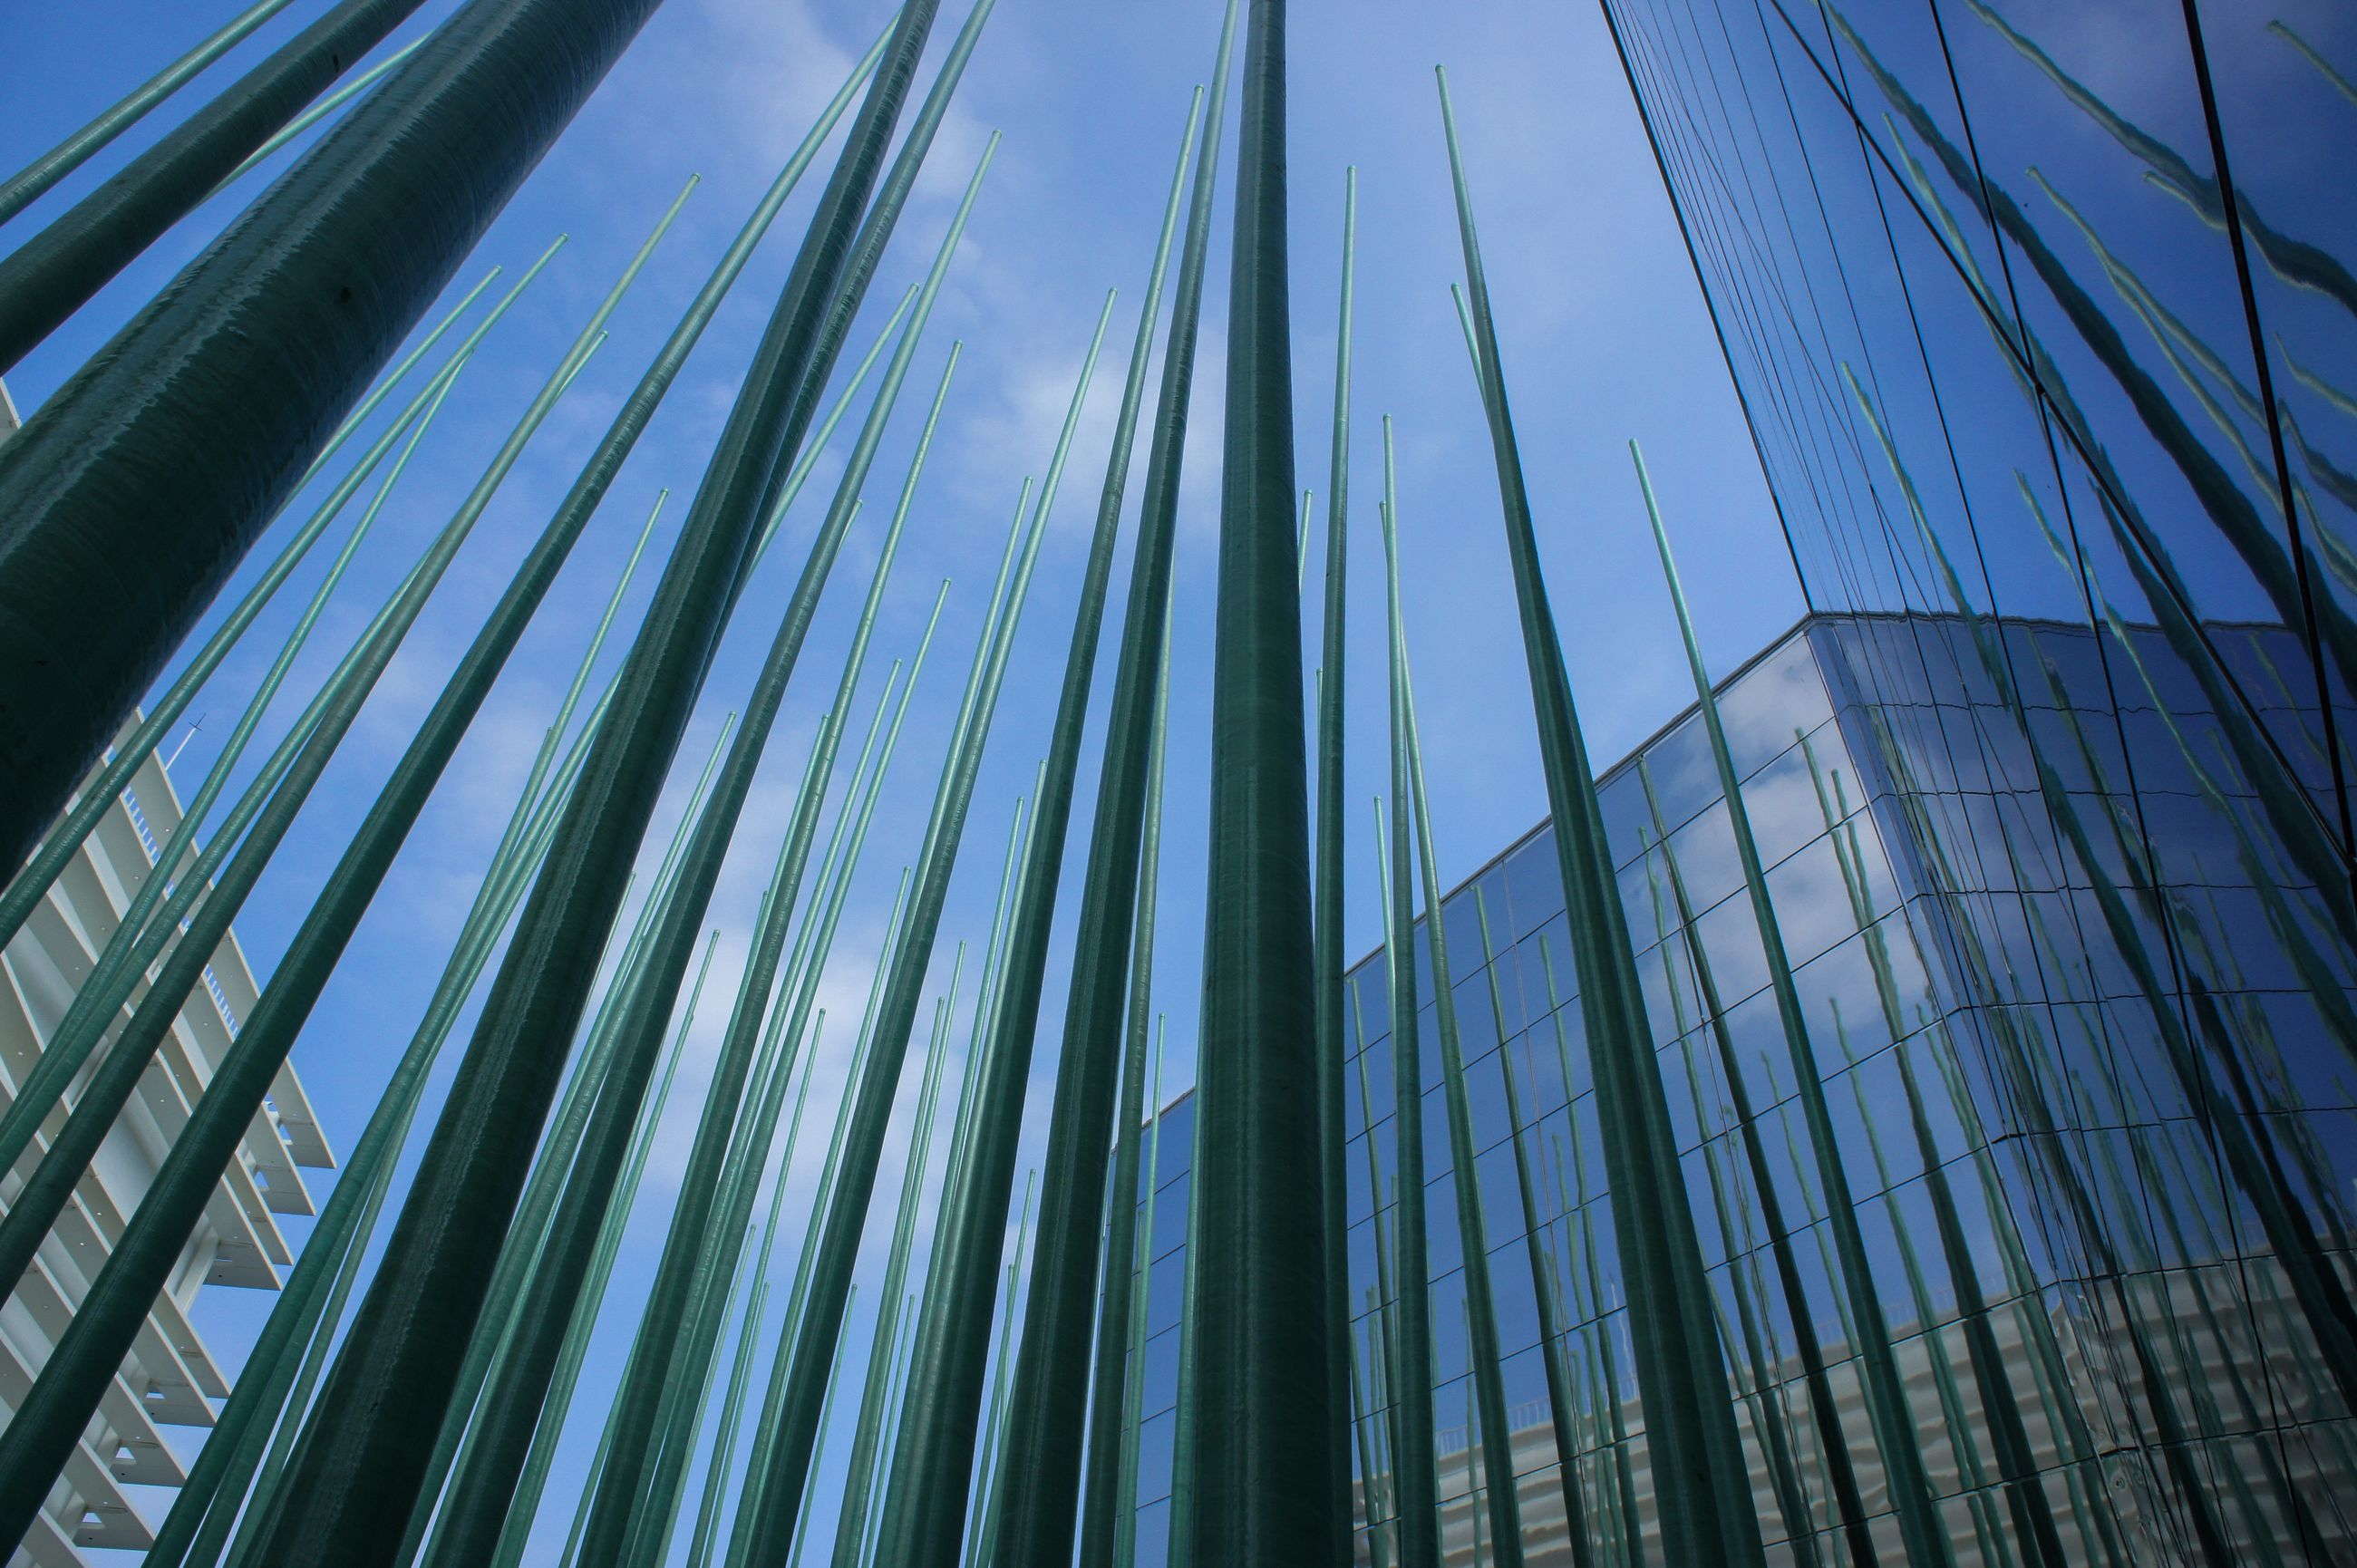 low angle view, architecture, built structure, building exterior, sky, modern, no people, building, day, city, nature, office building exterior, office, blue, tall - high, outdoors, glass - material, pattern, growth, green color, skyscraper, palm leaf, financial district